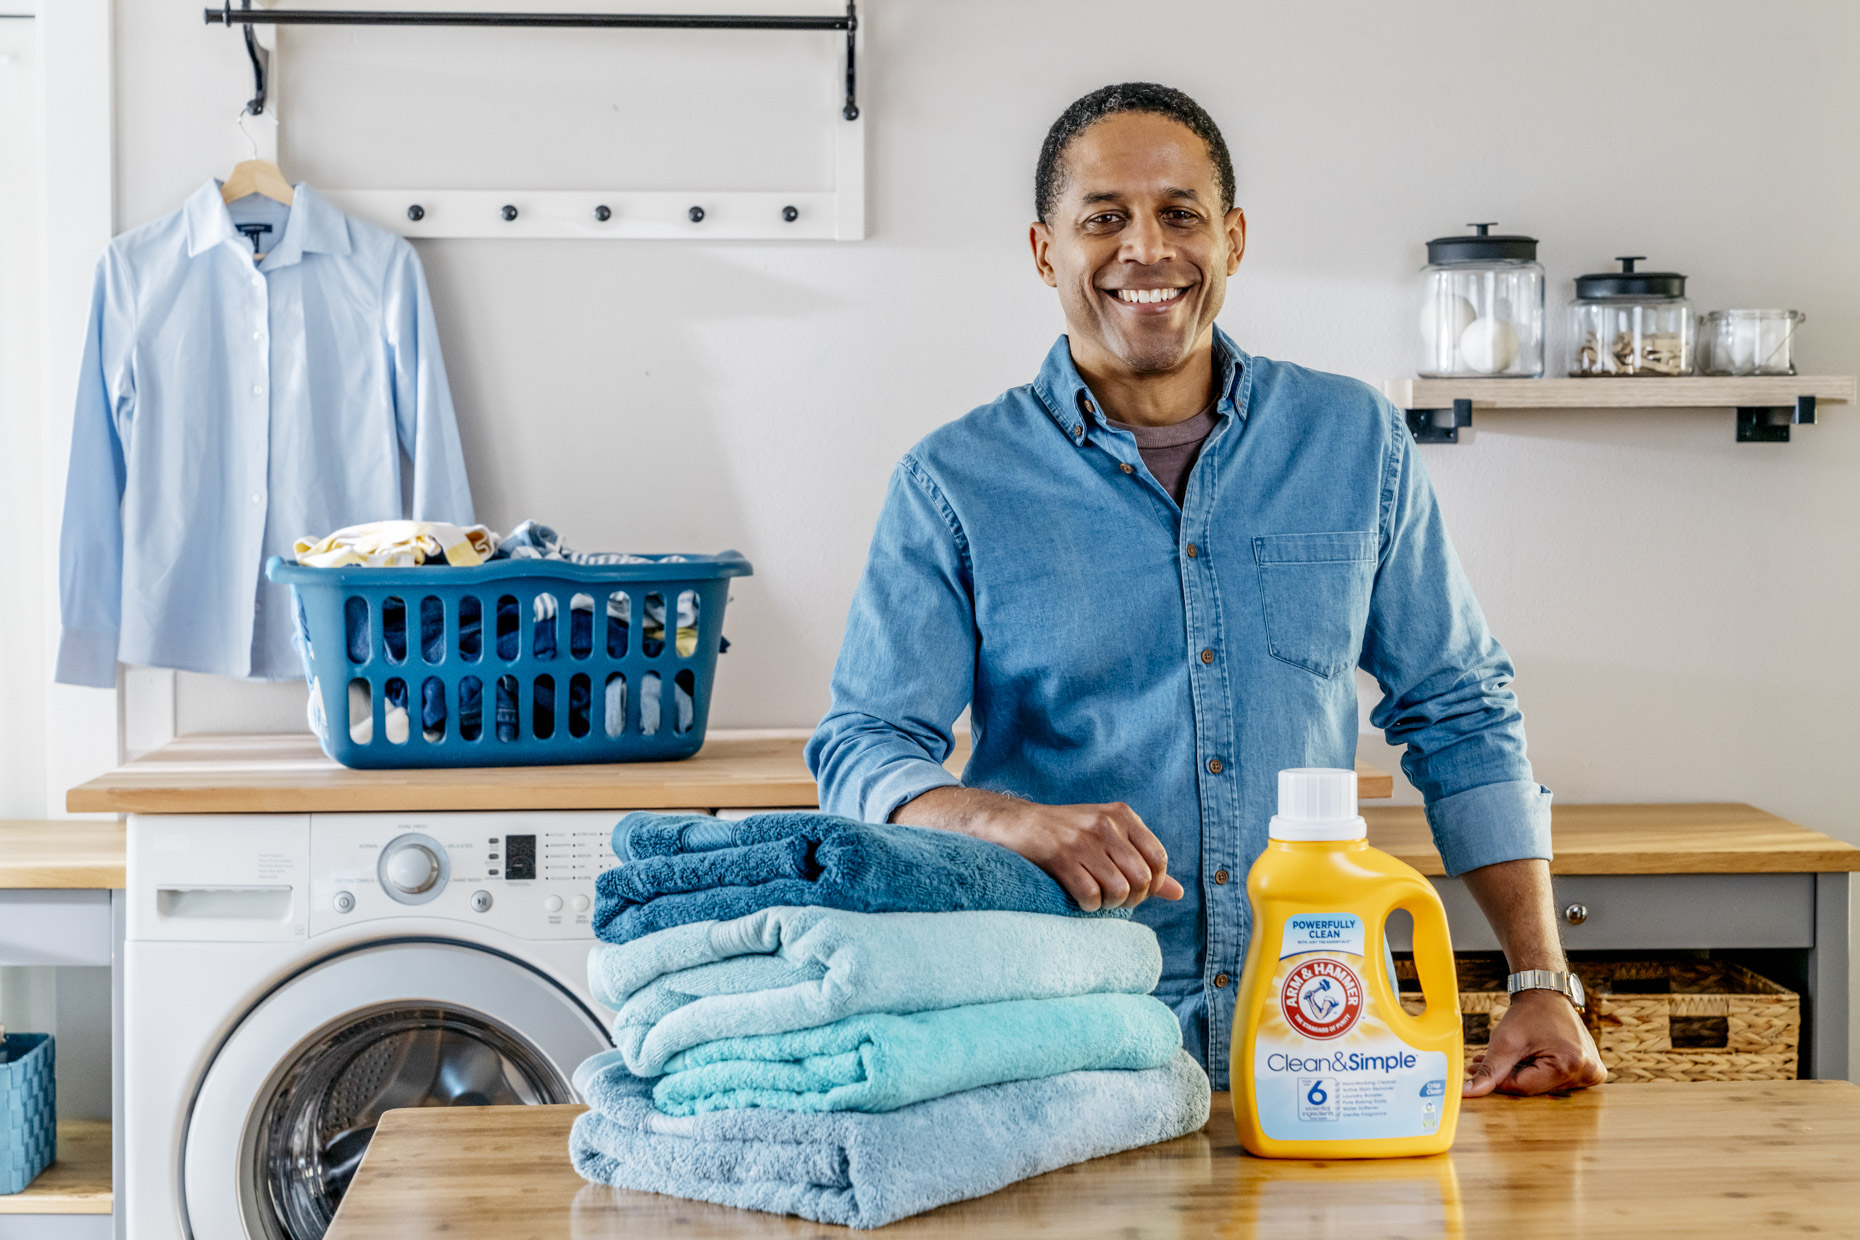 Smiling man with bottle of Arm and Hammer detergent and folded towels